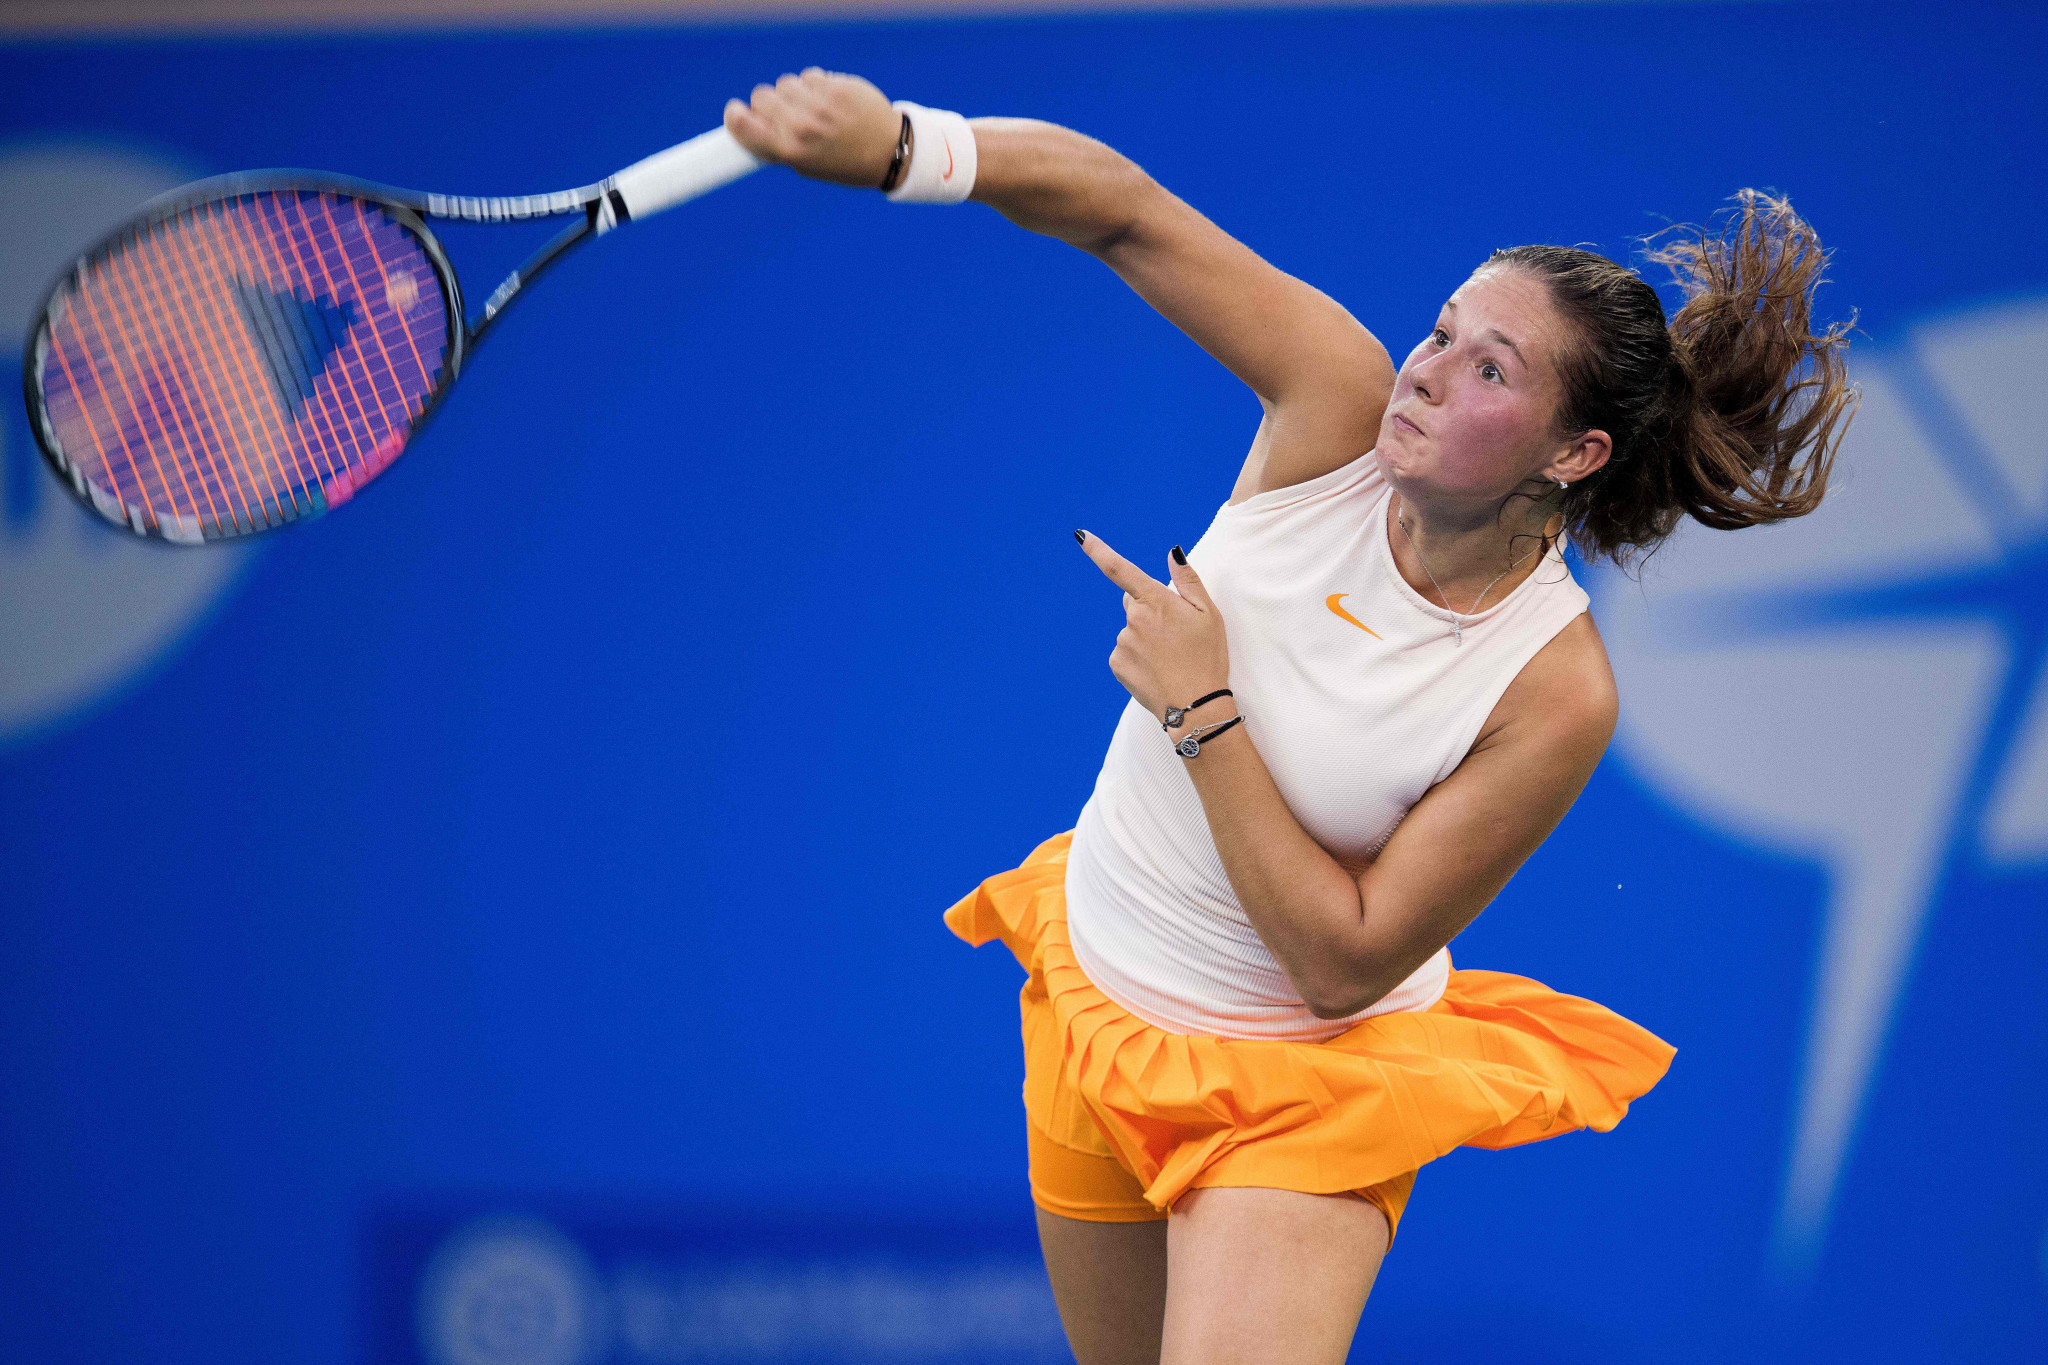 Home favourite Daria Kasatkina beat Great Britain's Johanna Konta in today's second semi-final ©Getty Images